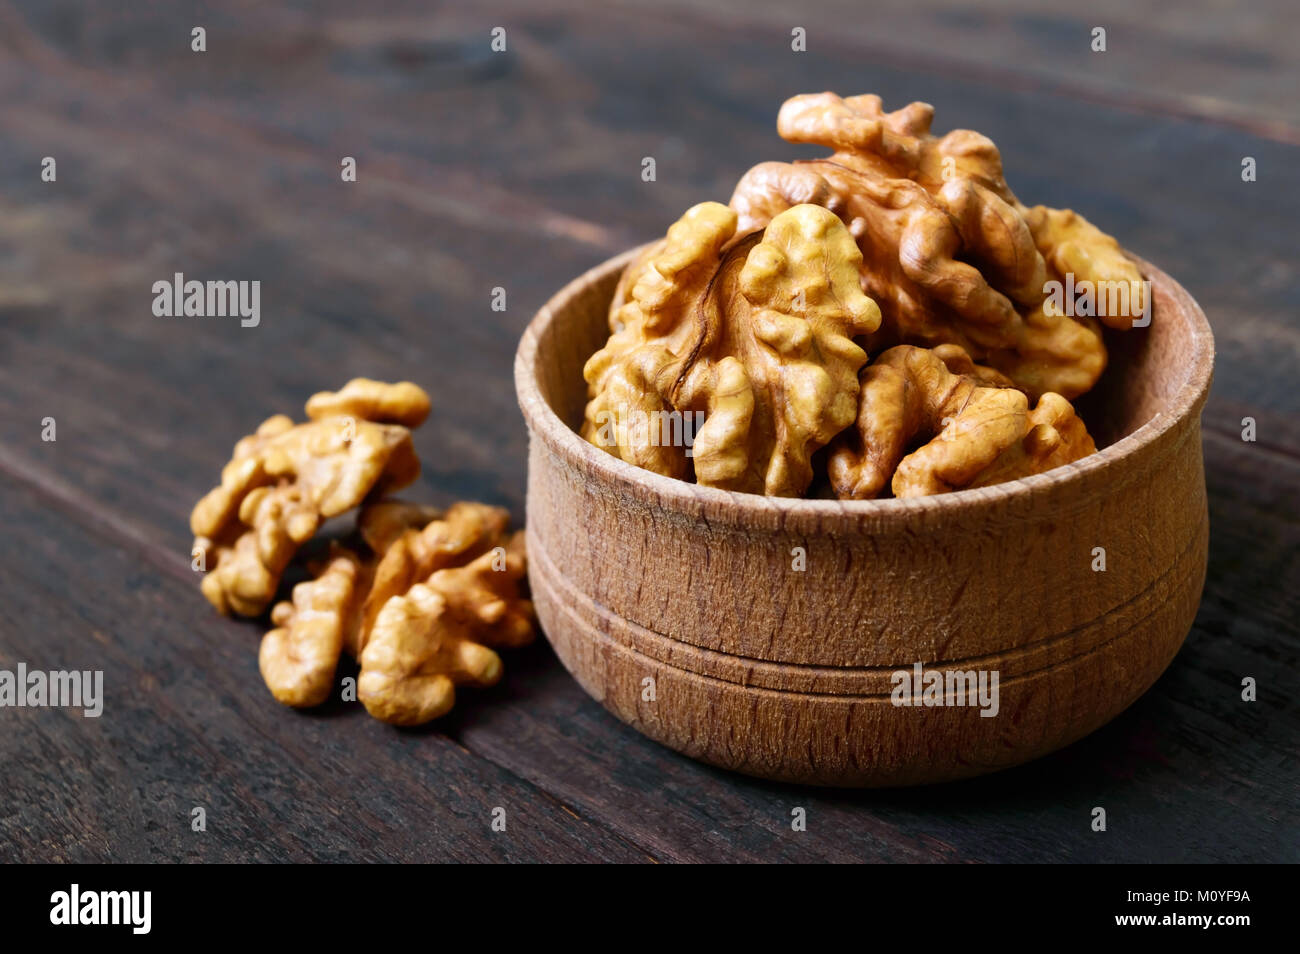 Walnut kernels in a wooden bowl on a dark wooden background. Close-up. - Stock Image